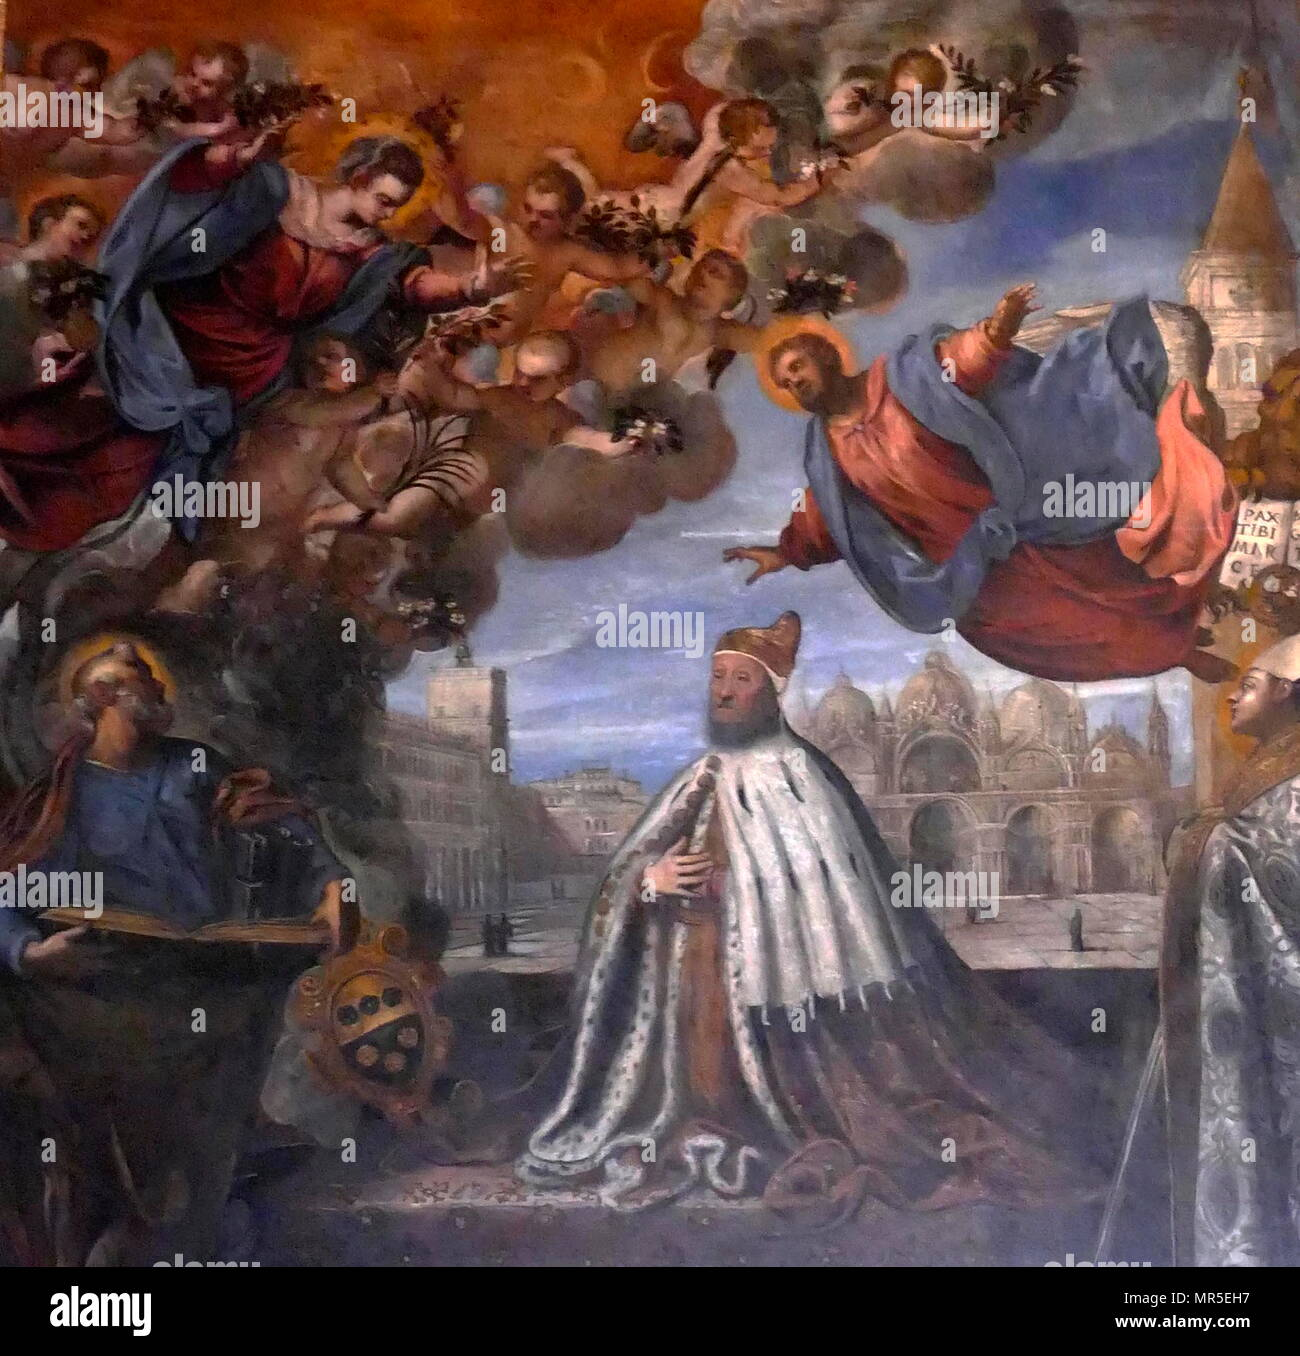 Doge Pietro Loredan Beseeching the Virgin, by Jacopo Palma il Giovane, 1595, Ducal Palace, Venice - Stock Image